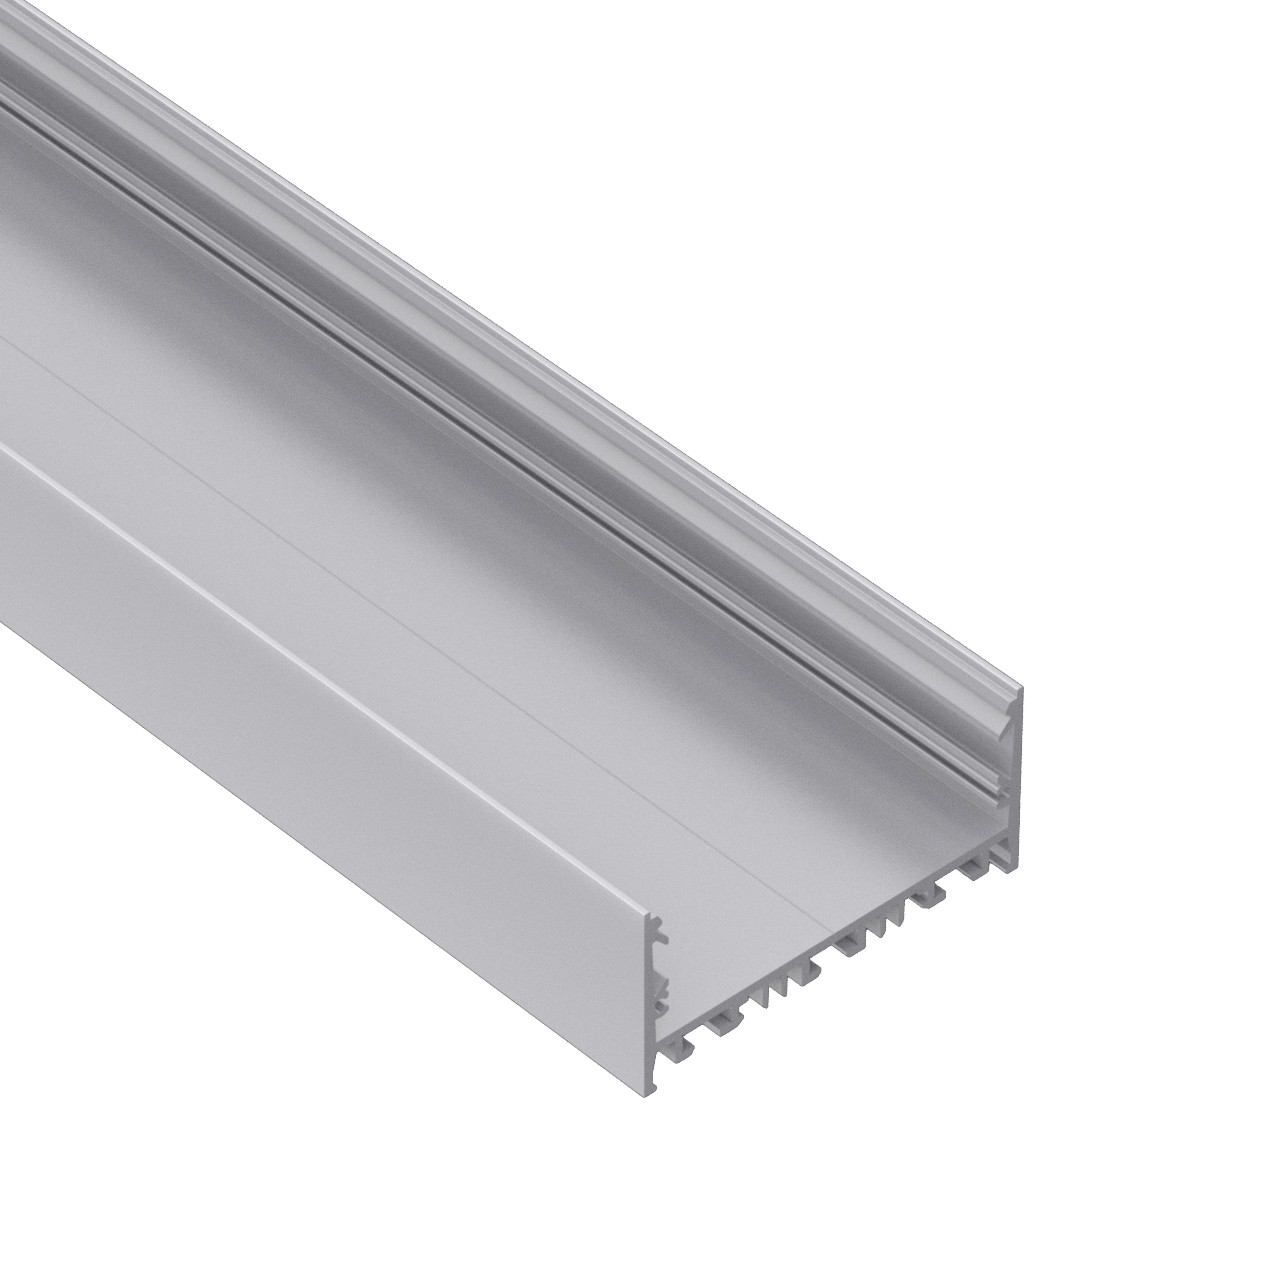 E80 Led Aluminium Profile